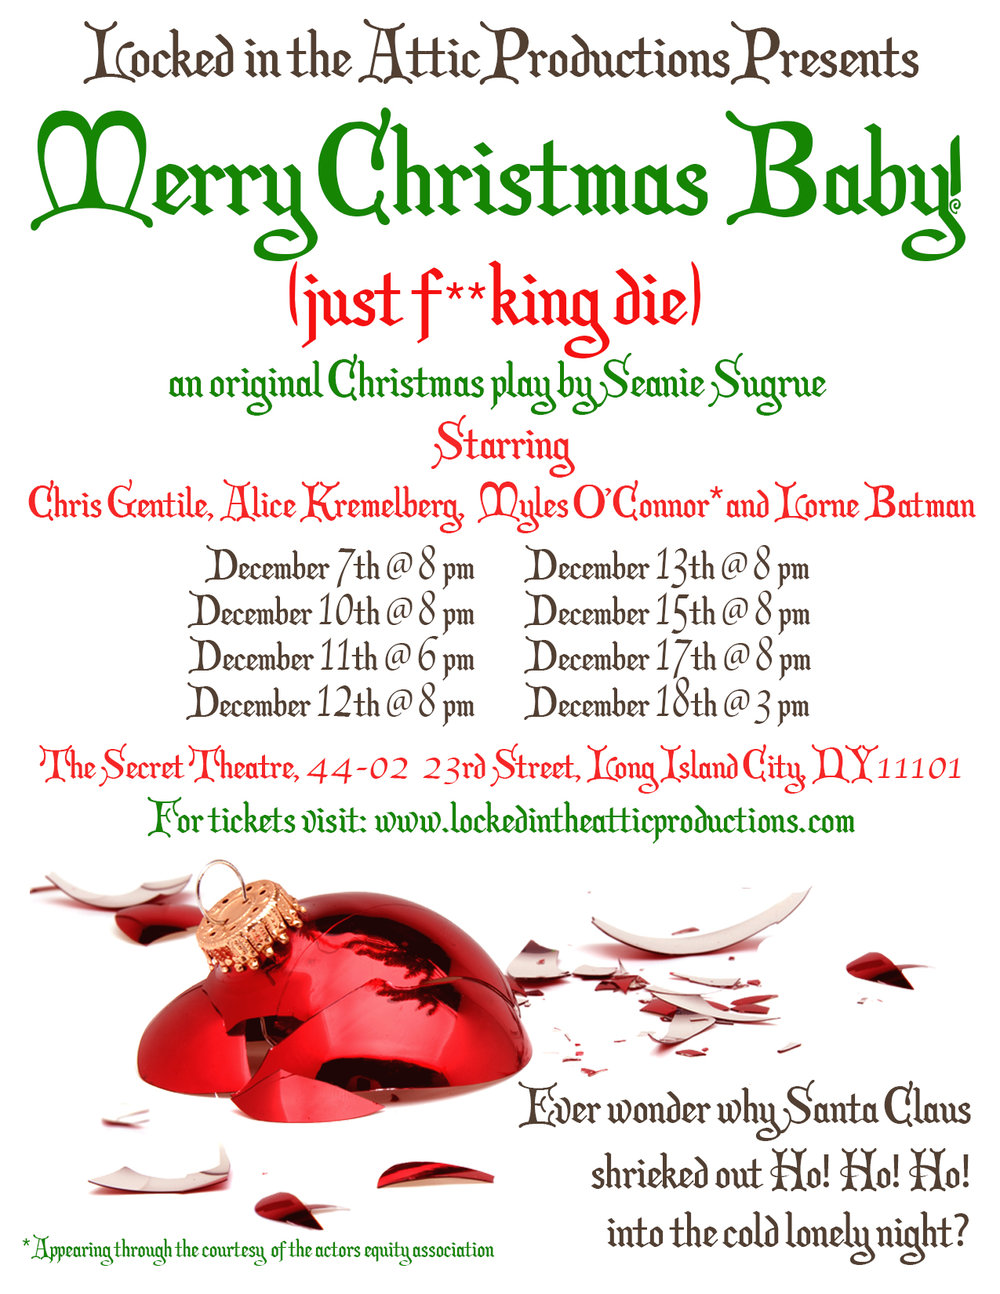 merry christmas baby just fking die locked in the attic productions - Merry Christmas Baby